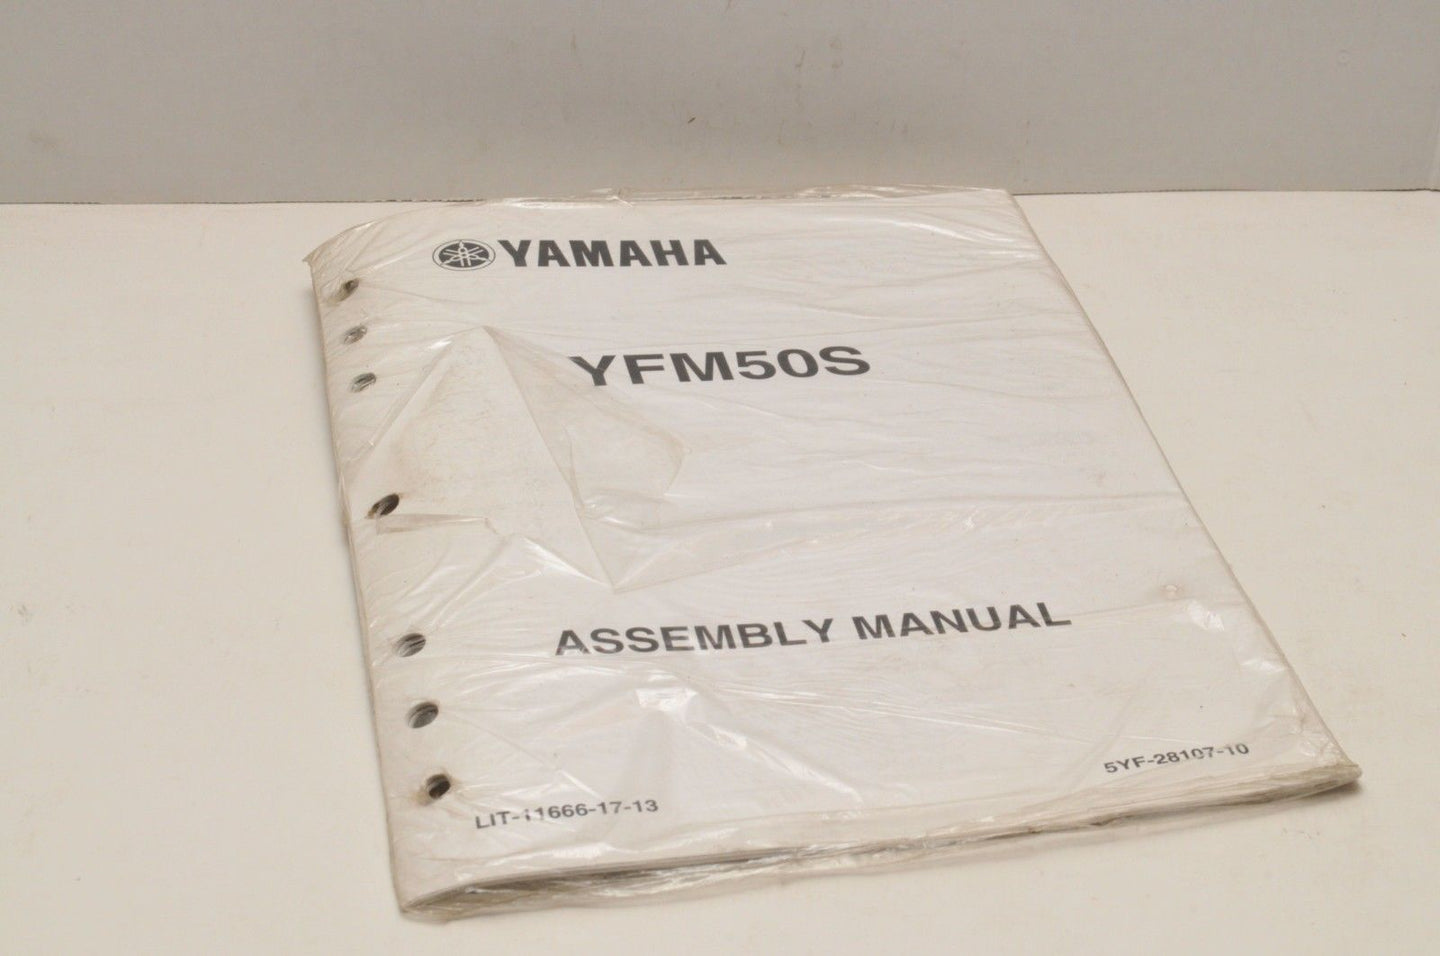 Genuine Yamaha ASSEMBLY SETUP MANUAL YFM50S RAPTOR 50 2004 LIT-11666-17-13